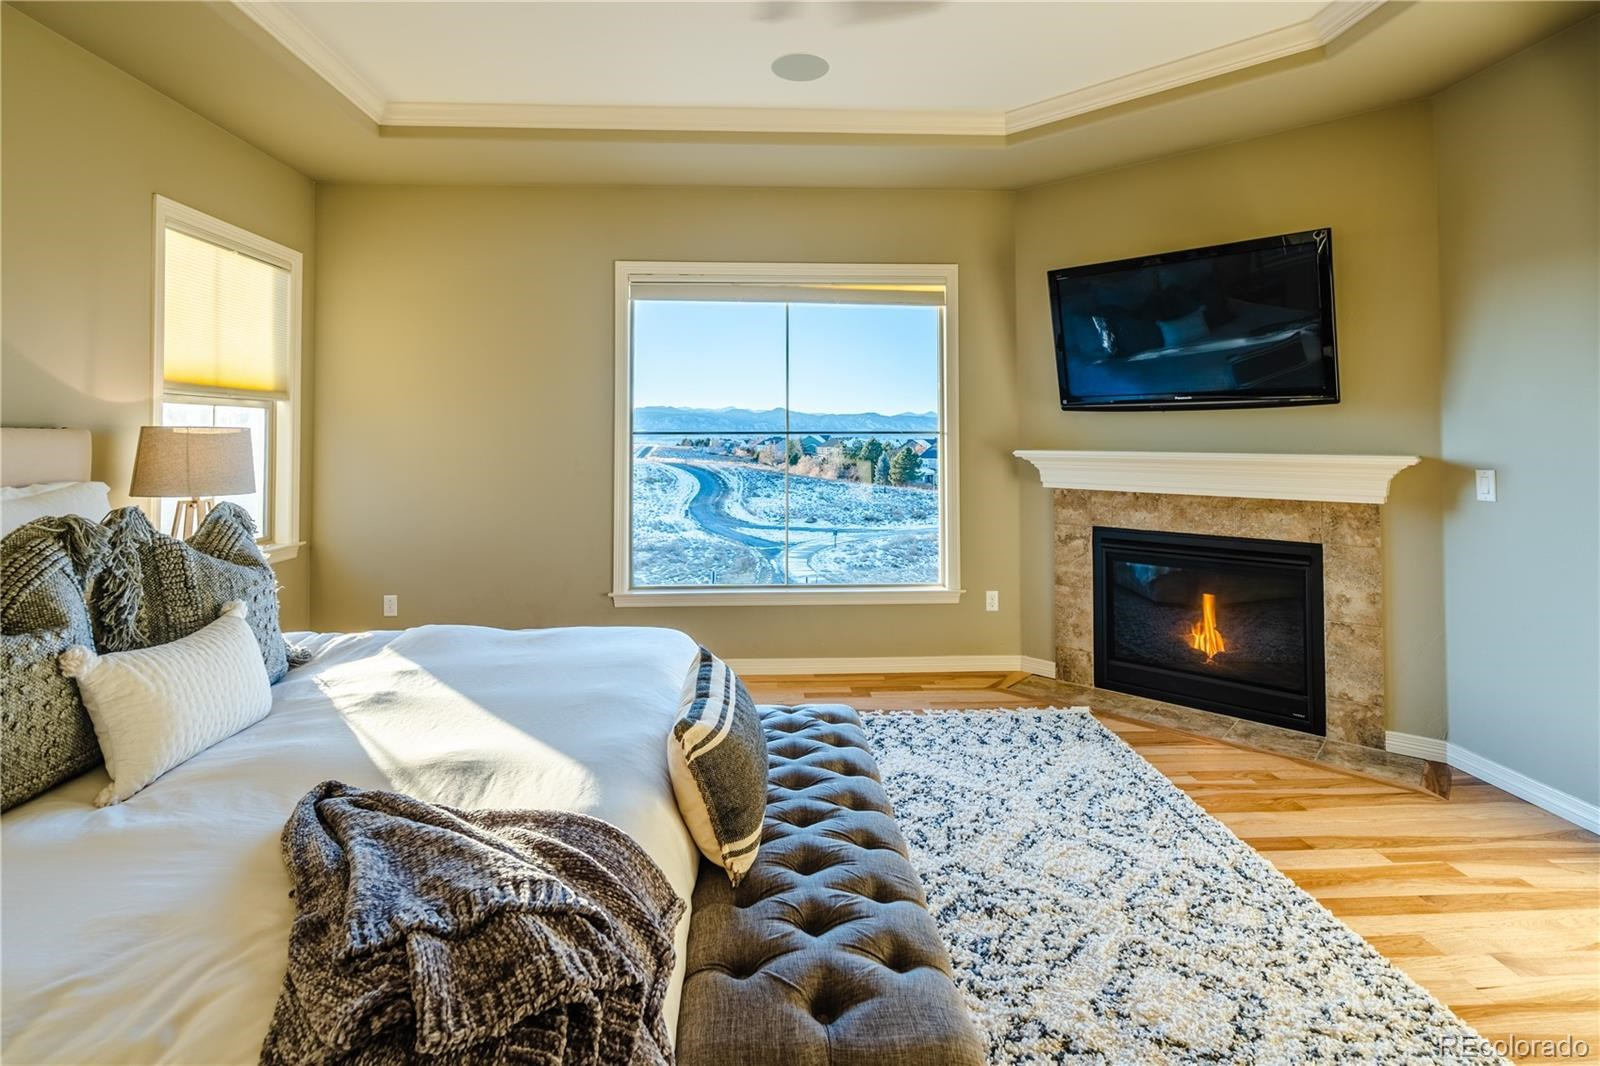 MLS# 2755672 - 11 - 10701 Manorstone Drive, Highlands Ranch, CO 80126